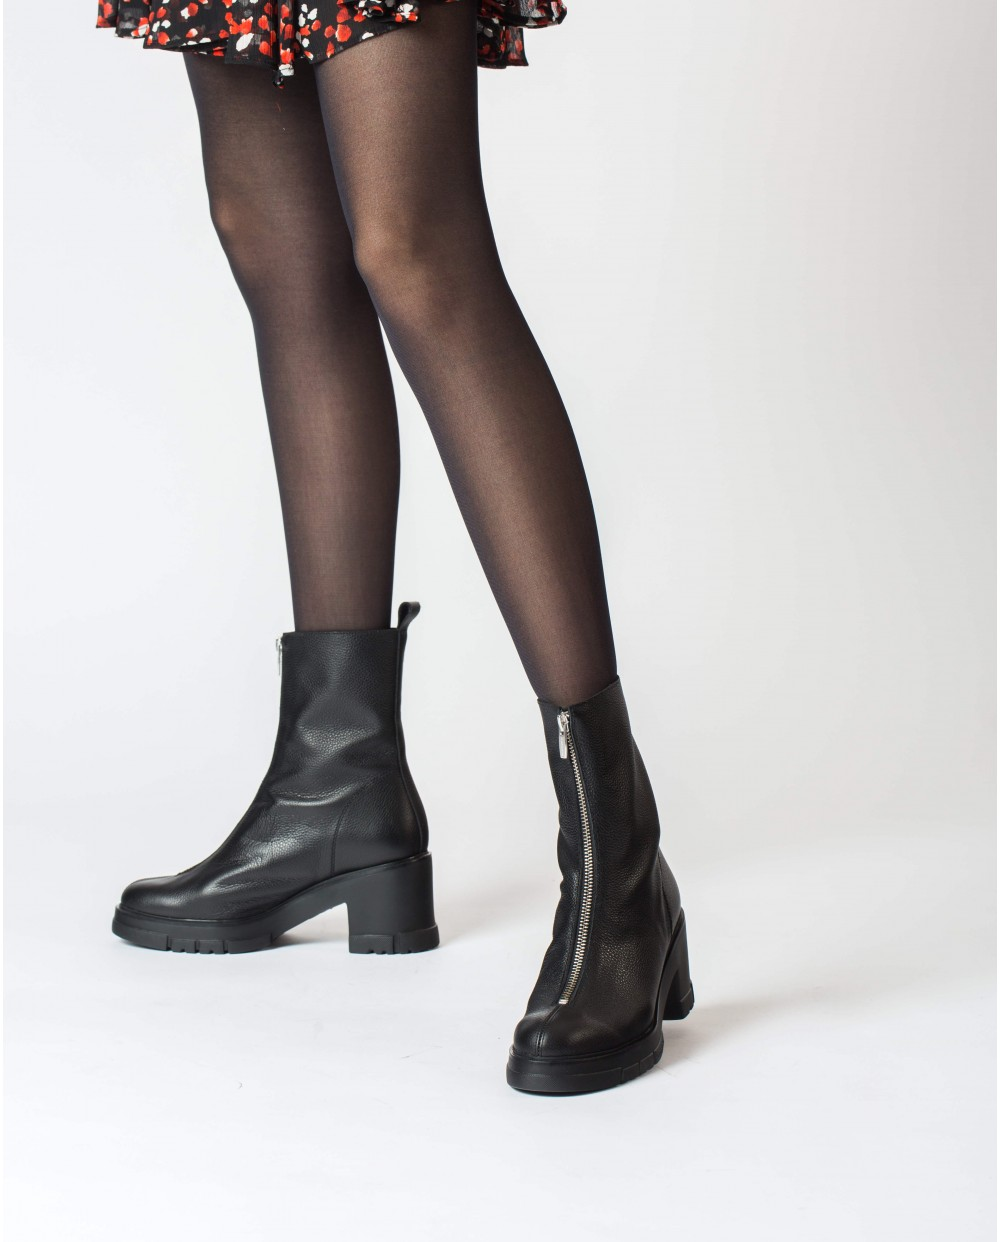 Wonders-Ankle Boots-Black Harley Ankle Boot